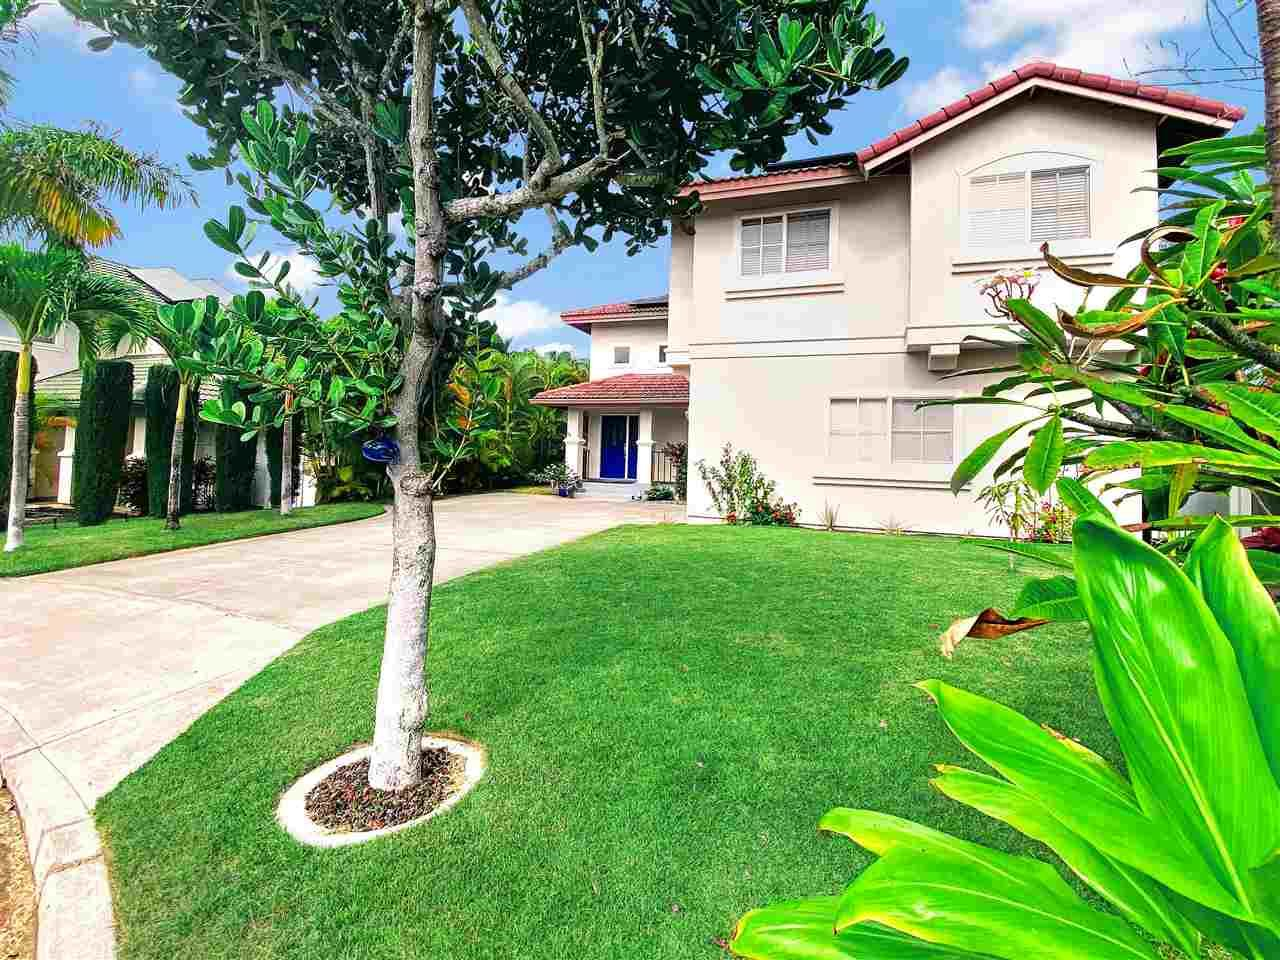 Photo of 25 Puukai Pl, Kahului, HI 96793 (MLS # 389671)